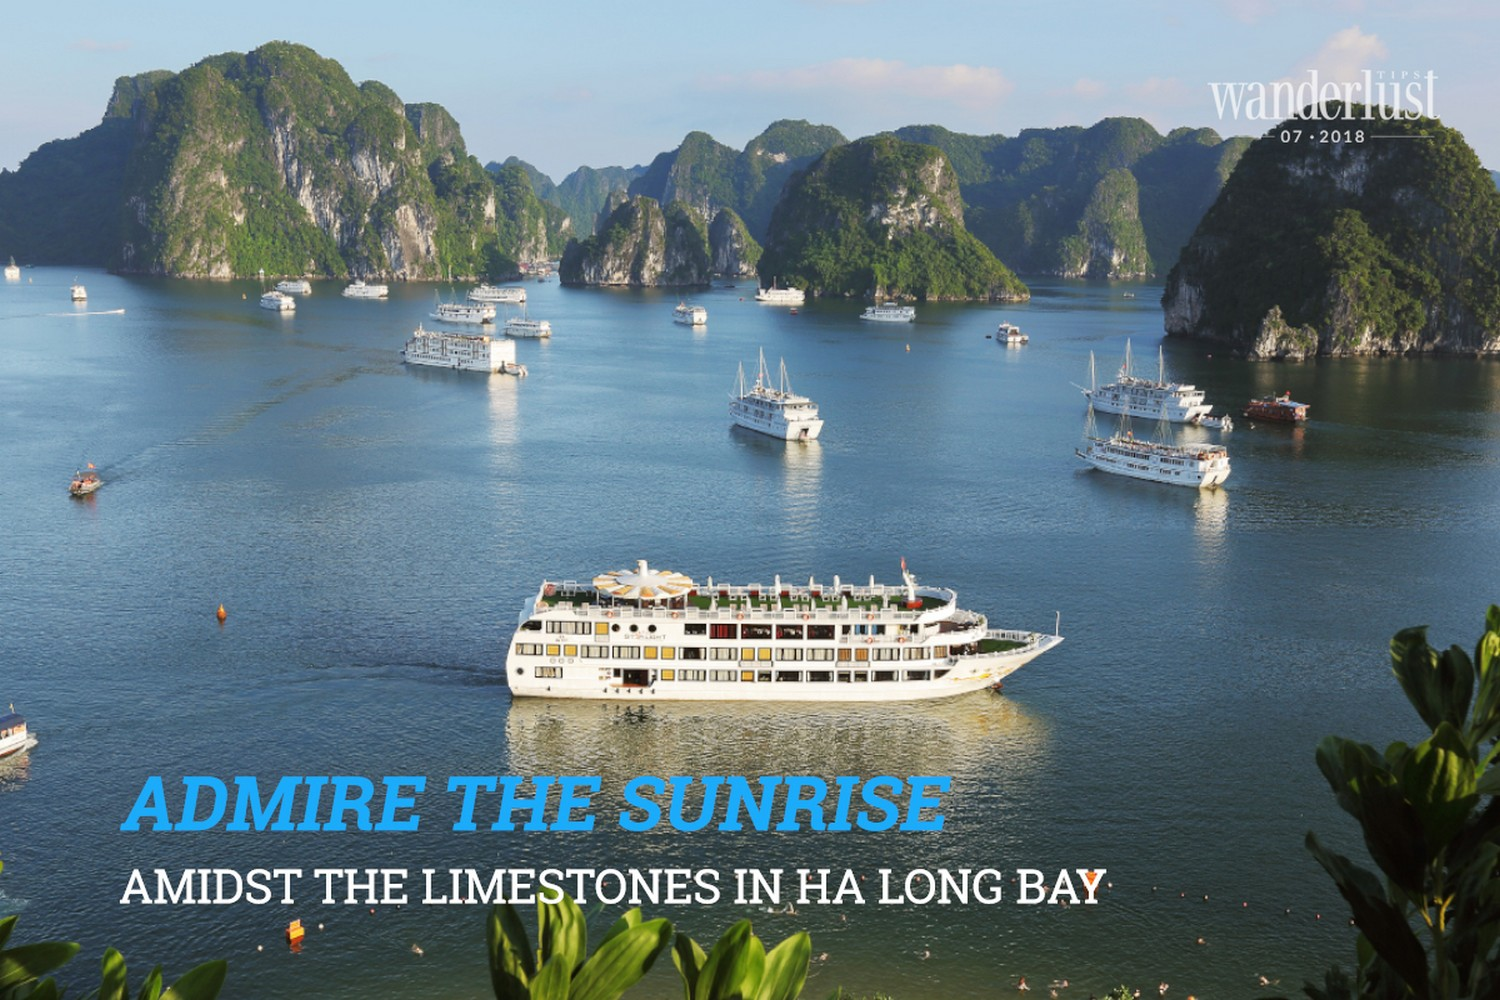 Wanderlust Tips Magazine | Admire the sunrise amidst the limestones in Ha Long Bay